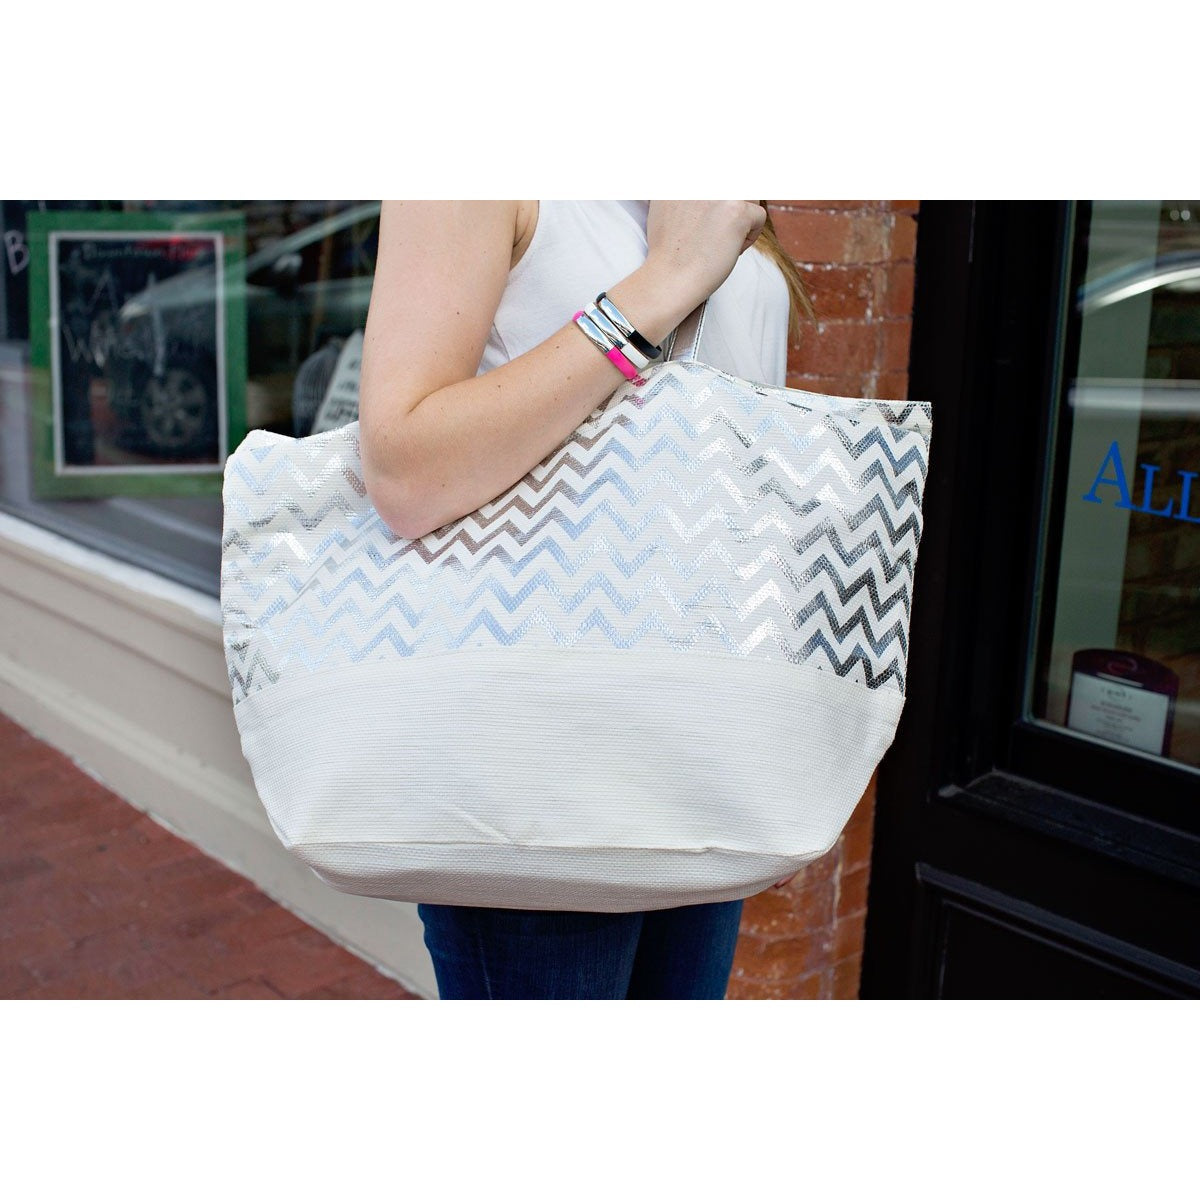 Metallic Silver Chevron Eco-Friendly Tote|Bags - Fashionit_inc